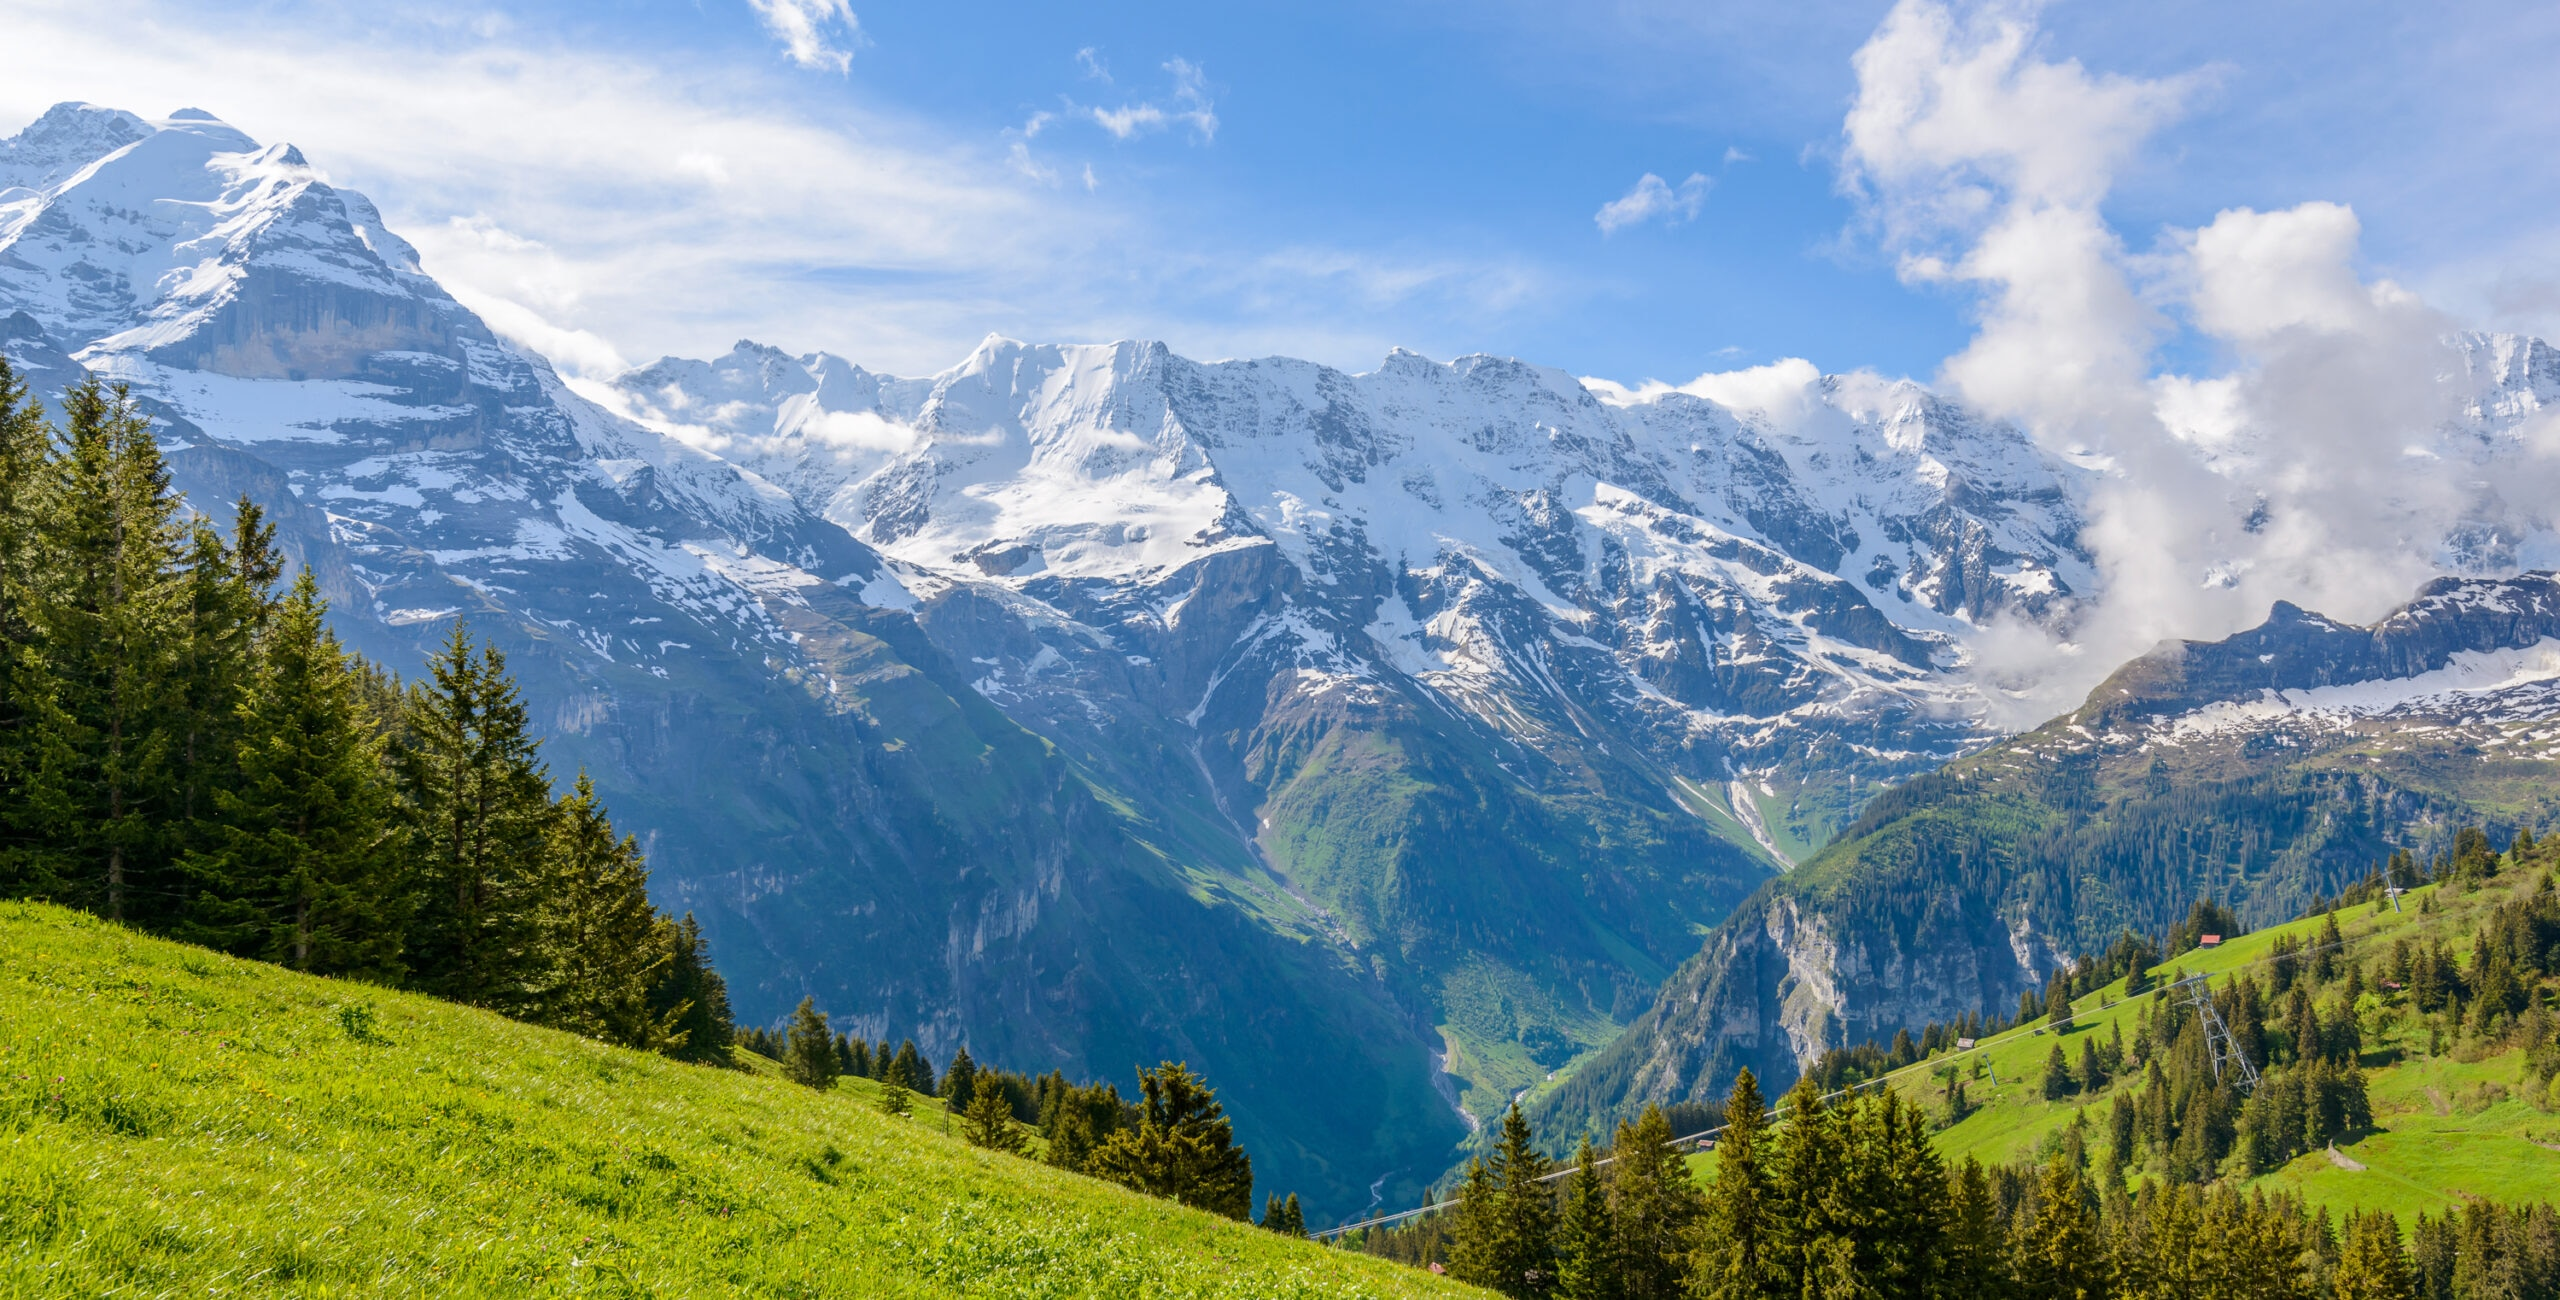 View of beautiful landscape in the Alps with fresh green meadows and snow-capped mountain tops in the background on a sunny day with blue sky and clouds in springtime. [Shutterstock image]